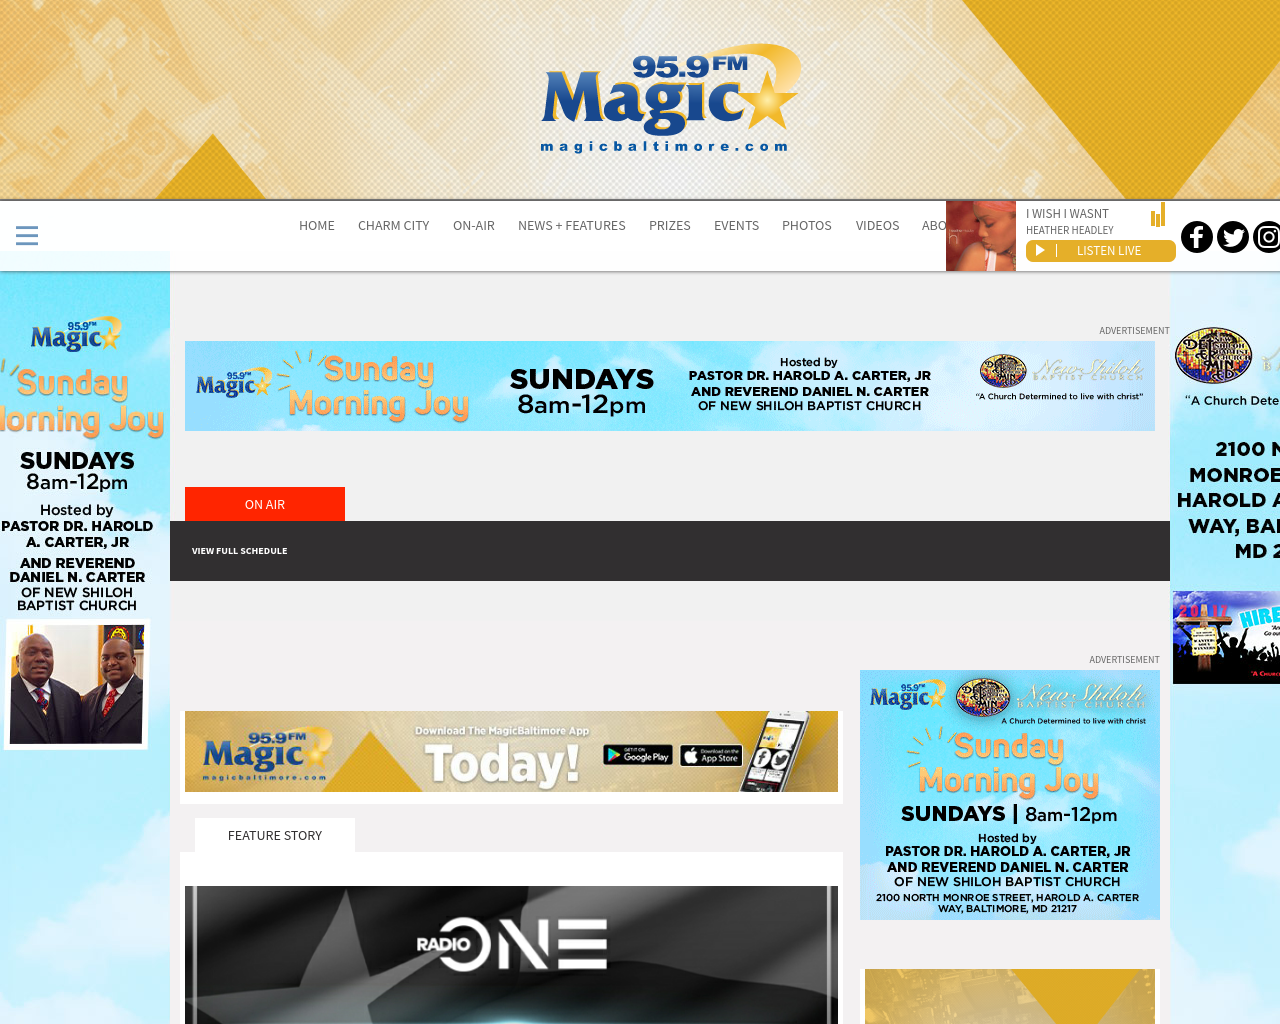 Magic-Baltimore-Advertising-Reviews-Pricing